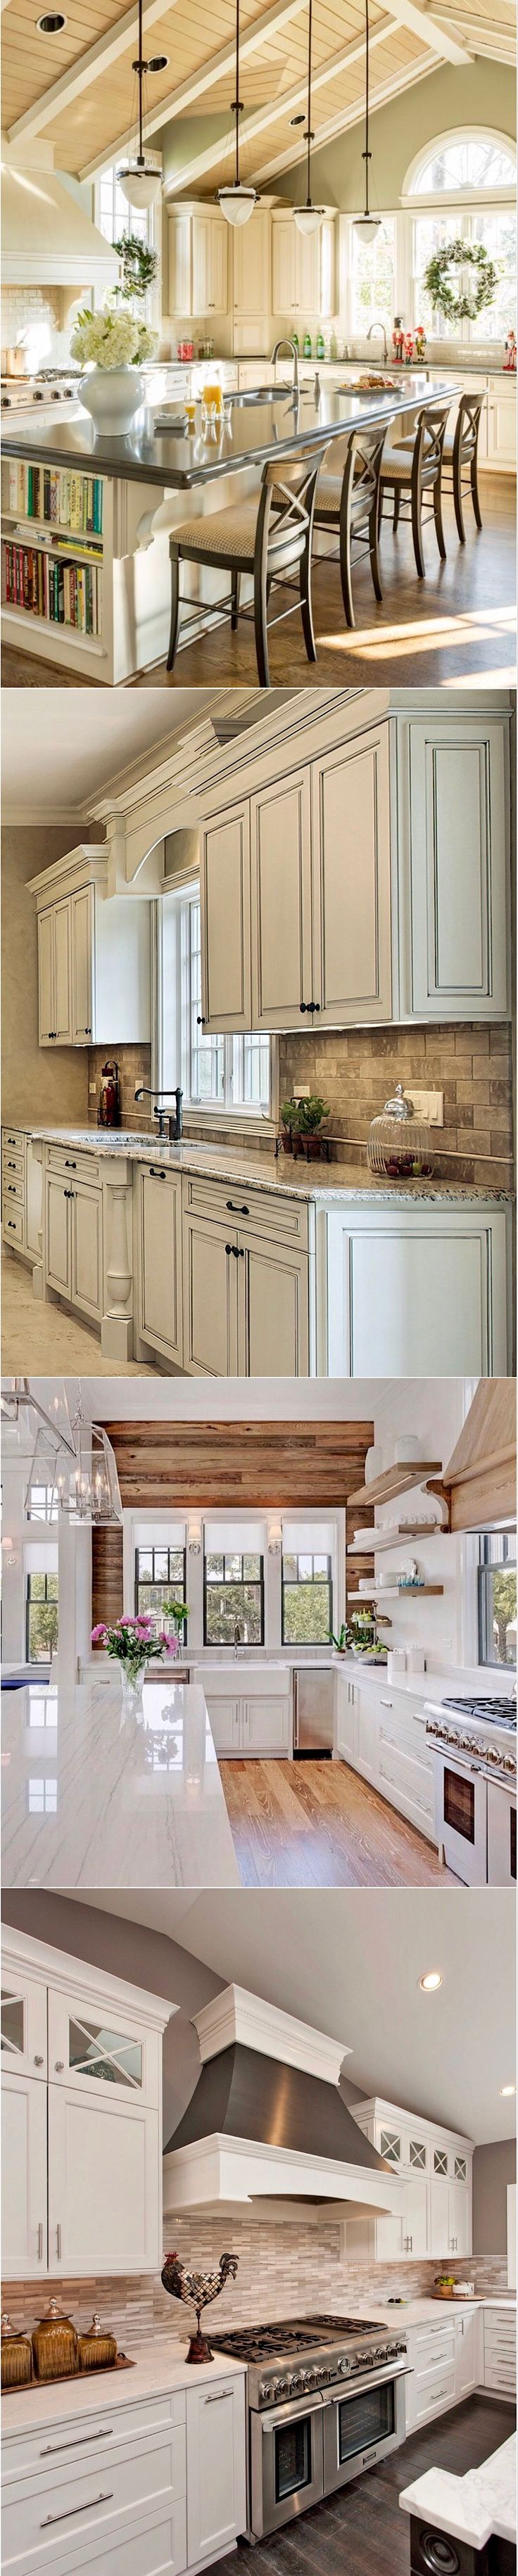 of designs the design your kitchen heart home luxpad ideas humphrey for munson beautiful